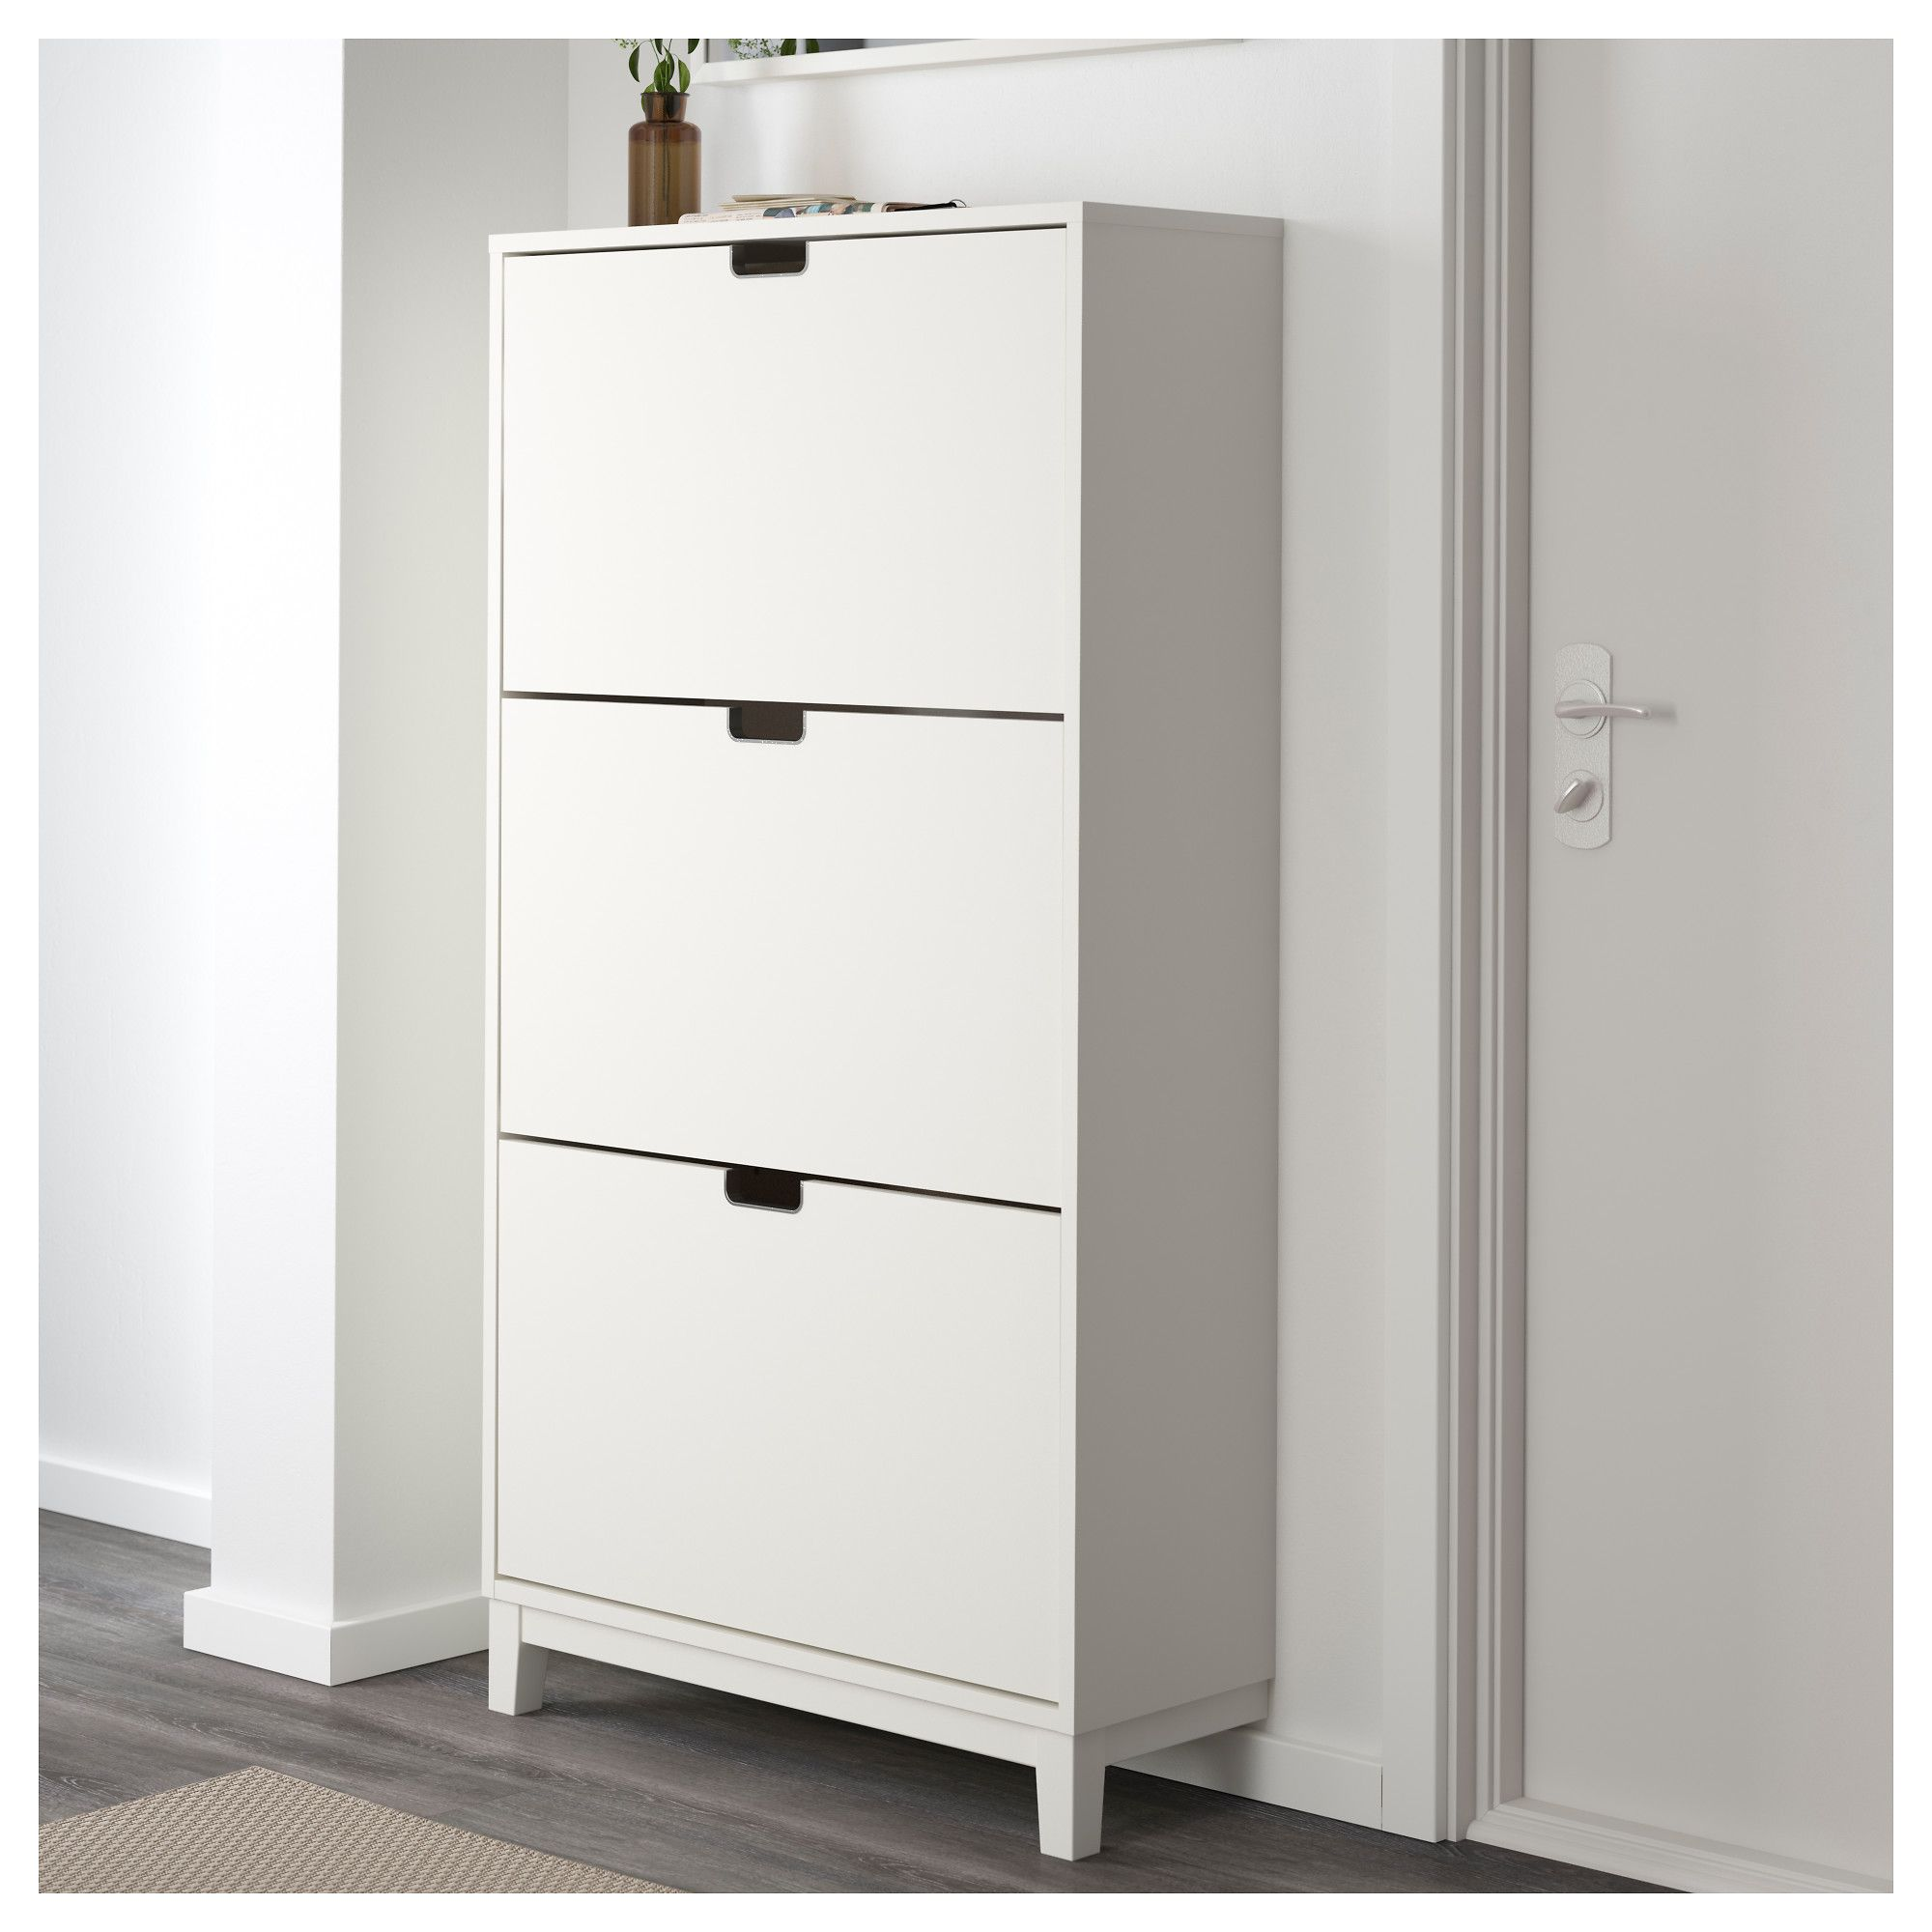 IKEA  STLL Shoe cabinet with 3 compartment white in 2019